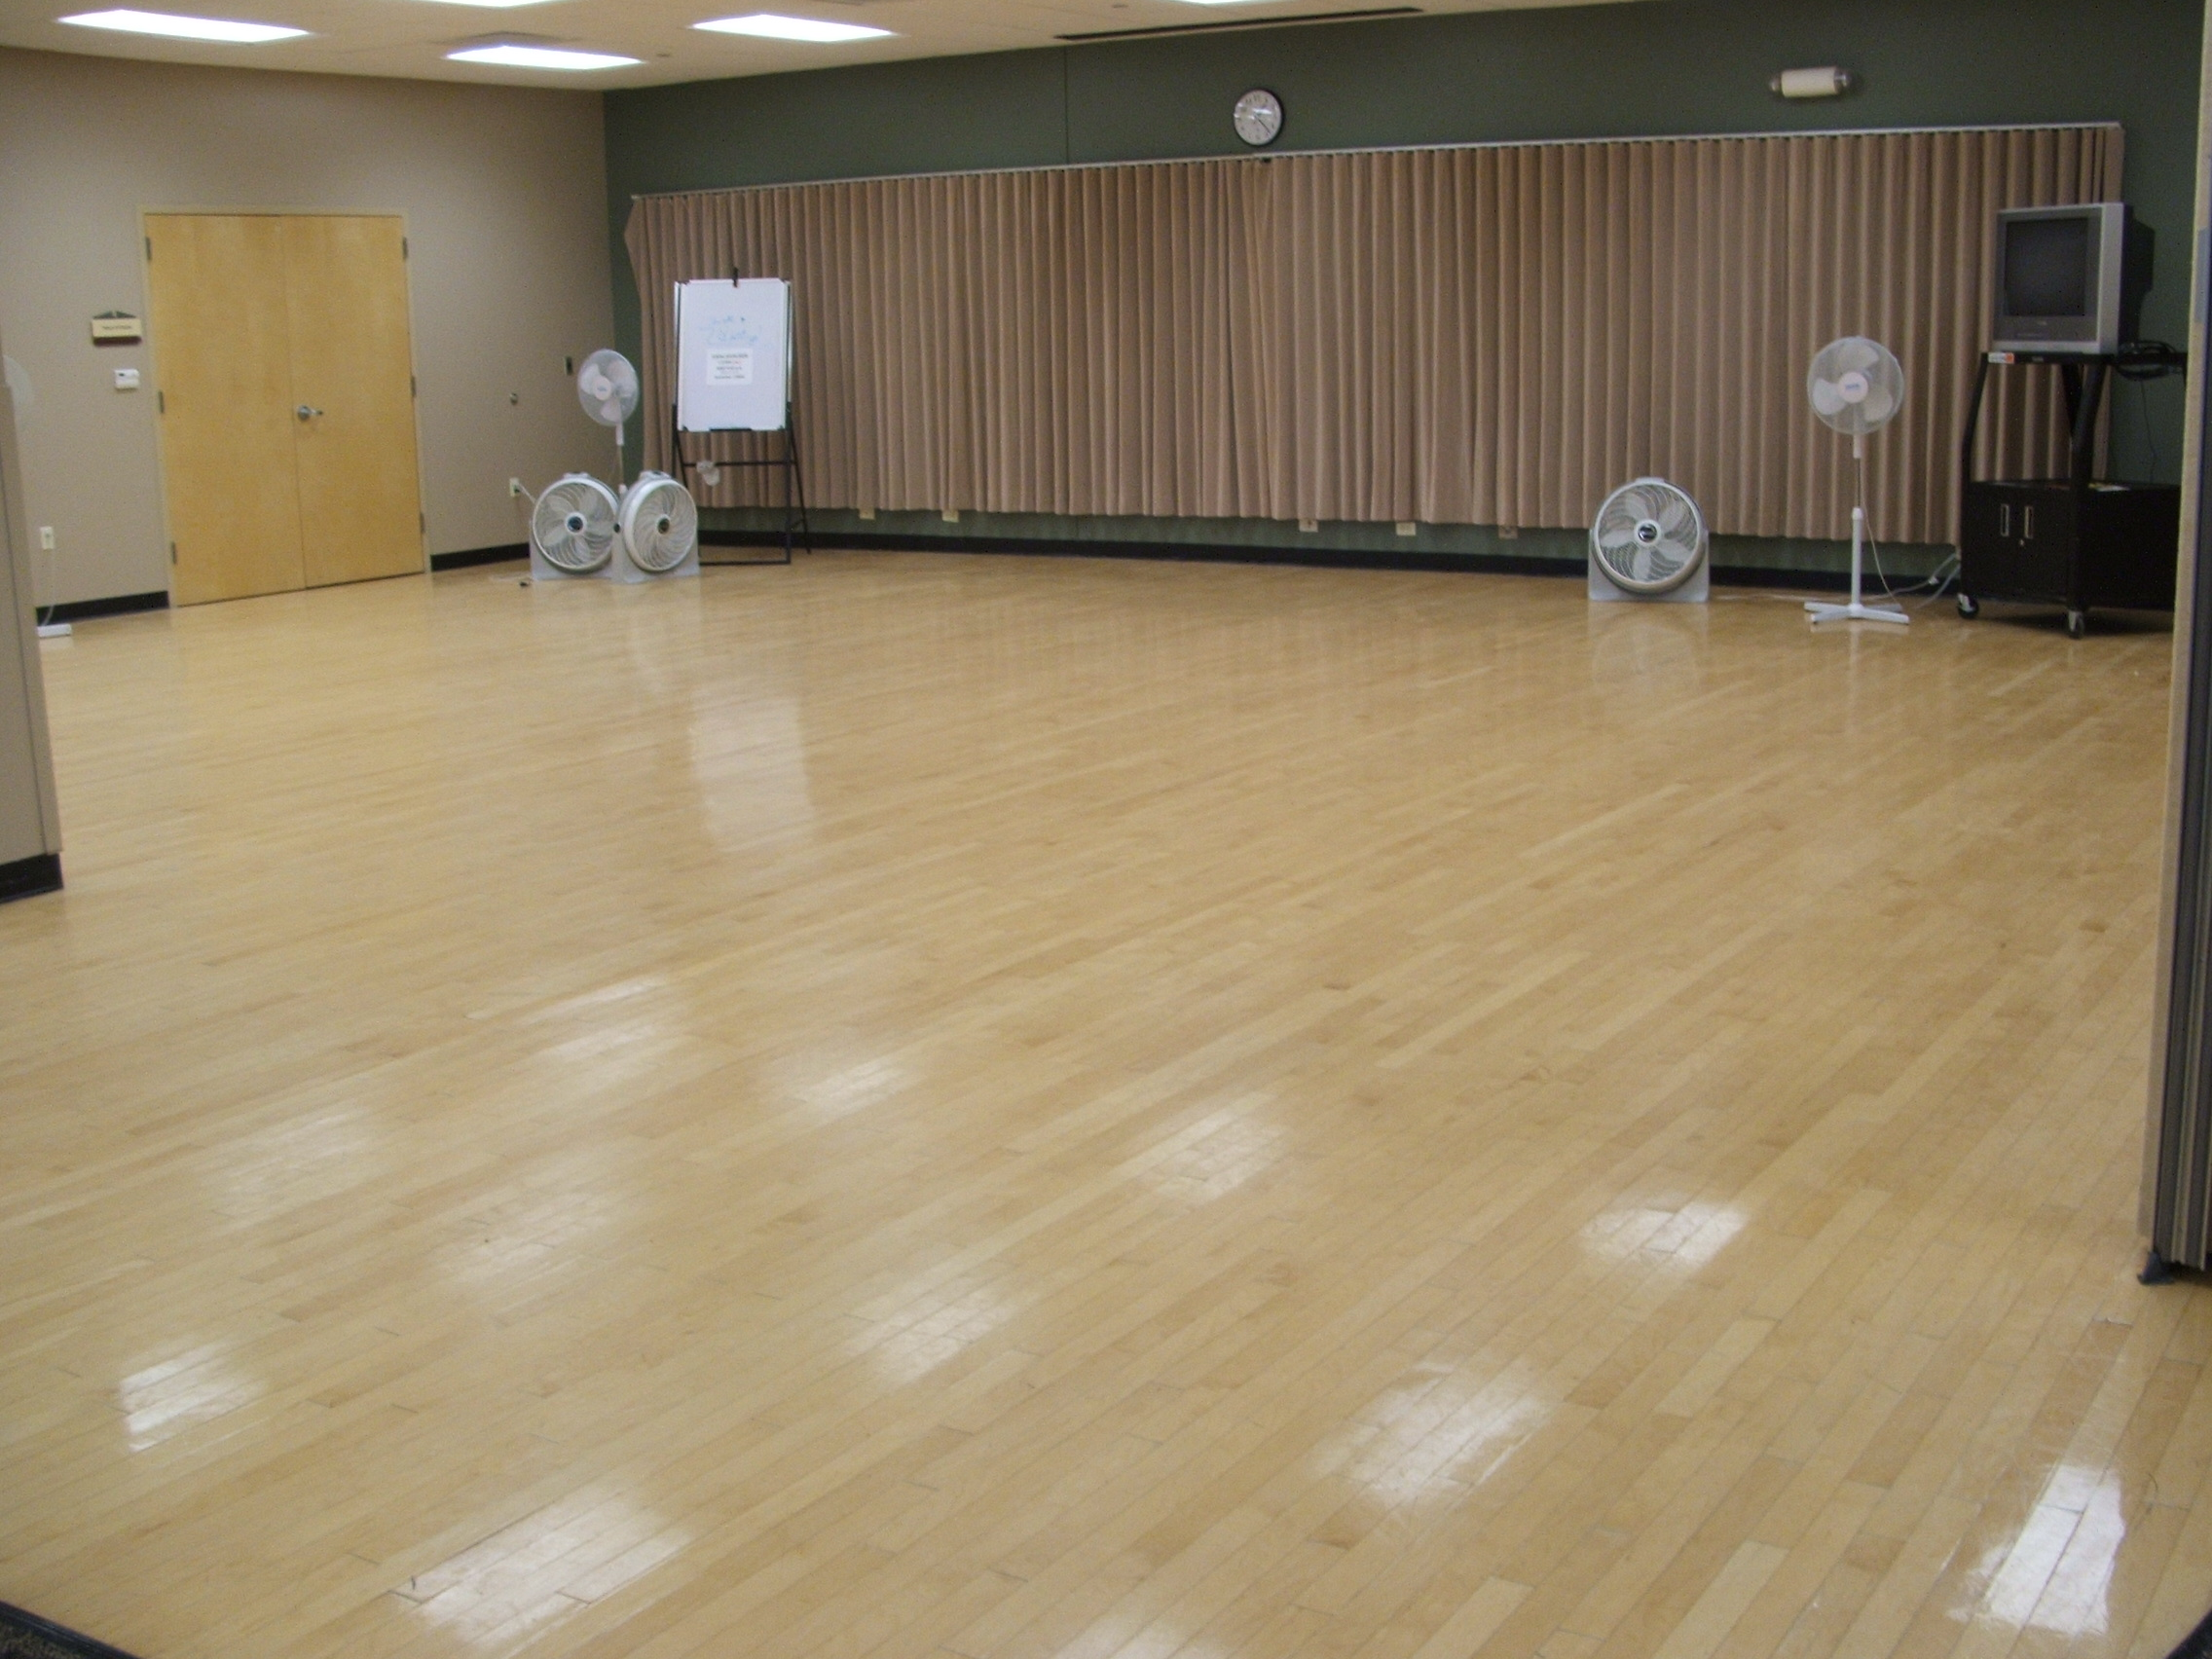 Wooden Floor at Community Center